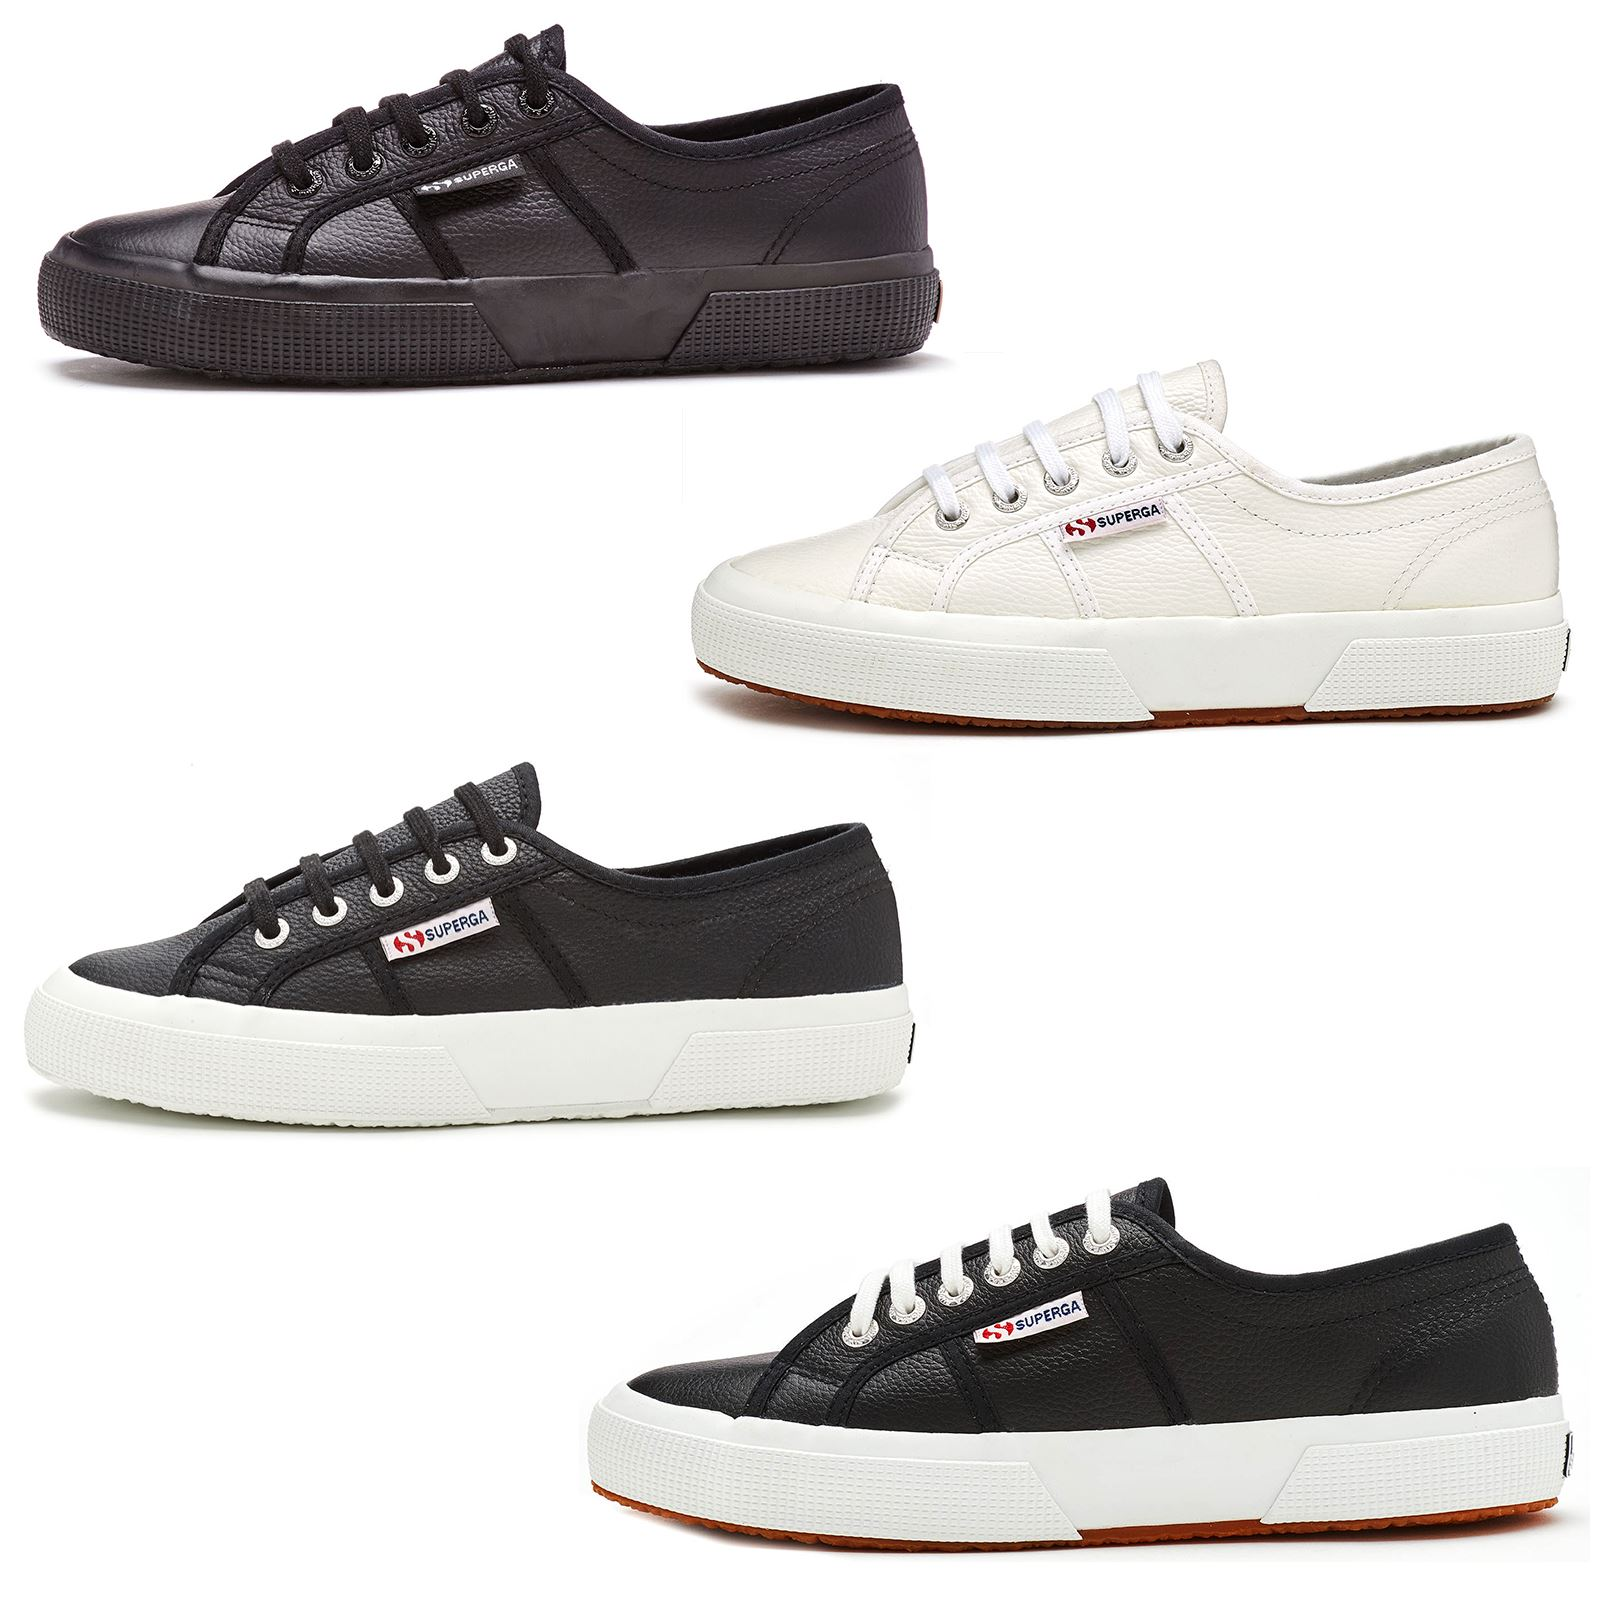 03ddcc55f42c88 Superga 2750 Efglu Leather Trainers Shoes in White & Black 900 & 999 ...